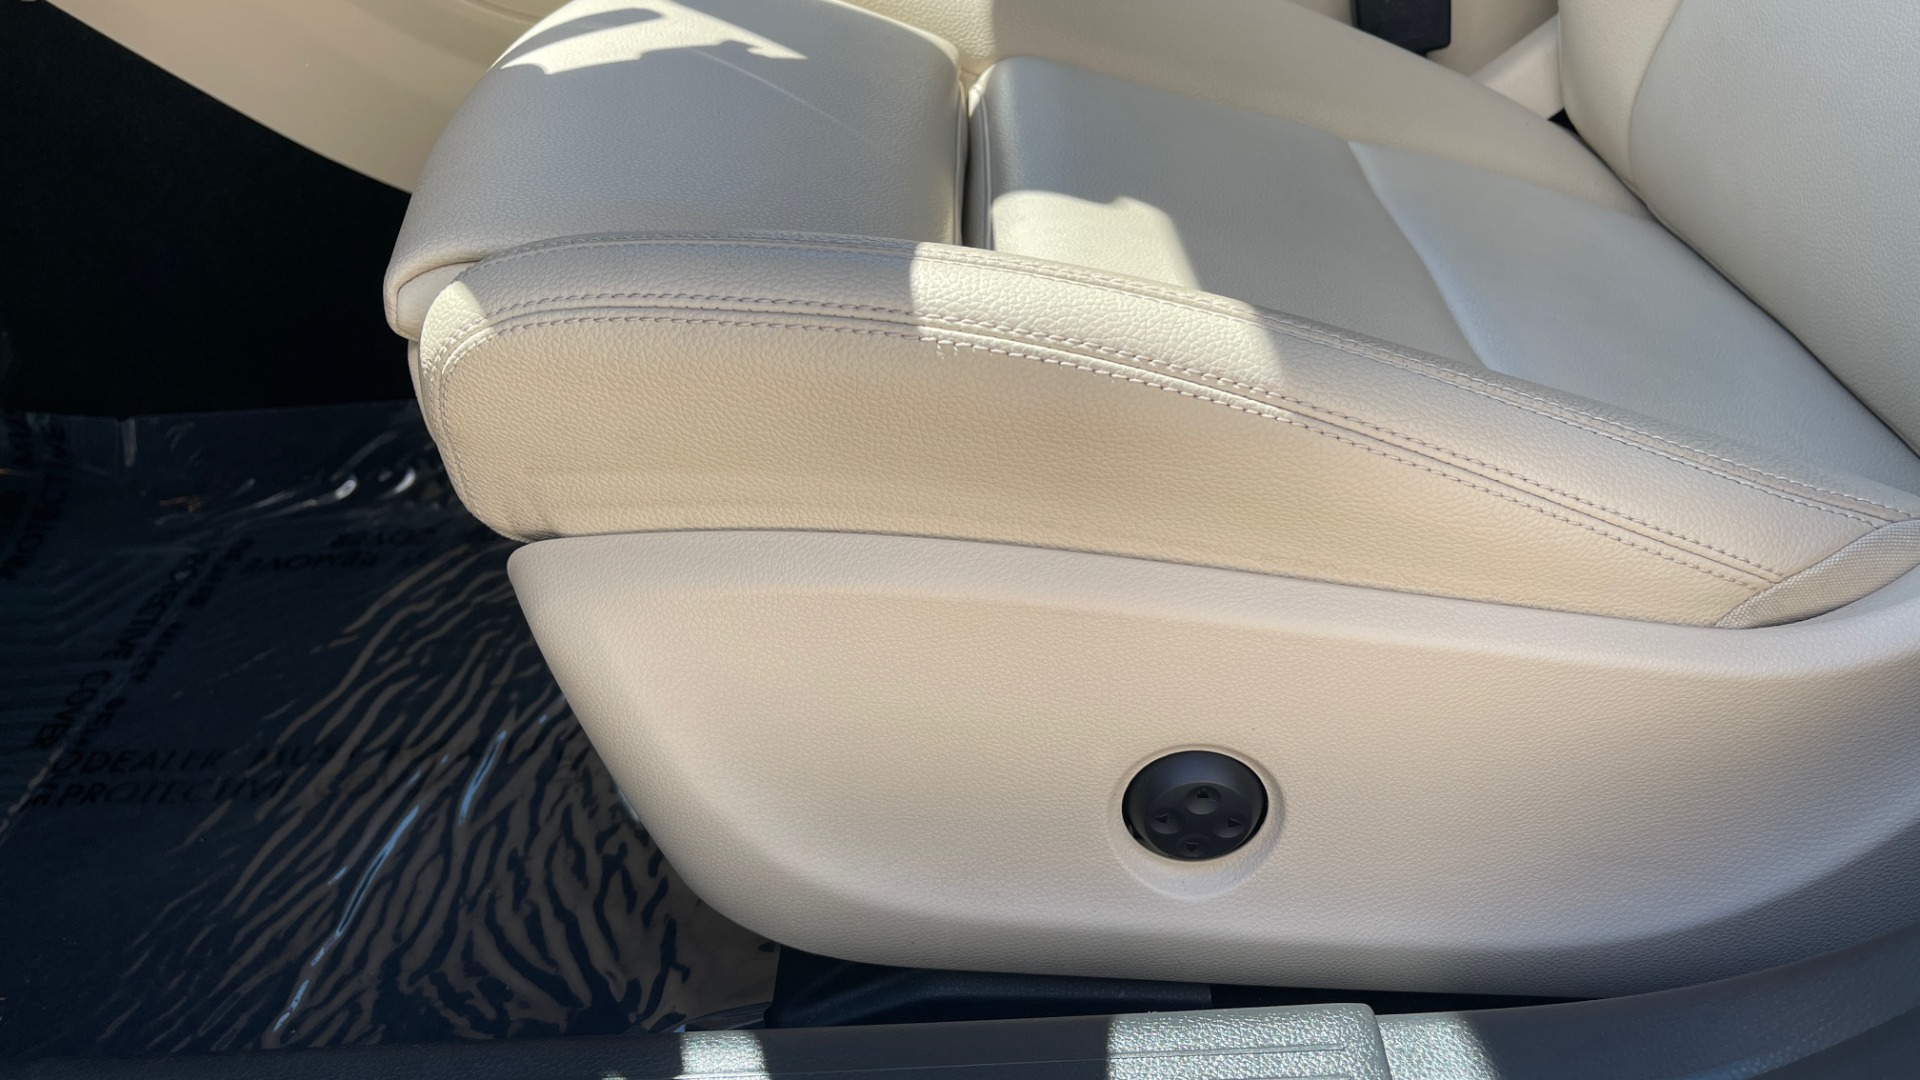 Used 2018 Mercedes-Benz CLA 250 PREMIUM / CONV PKG / APPLE / PANO-ROOF / REARVIEW for sale $29,795 at Formula Imports in Charlotte NC 28227 28